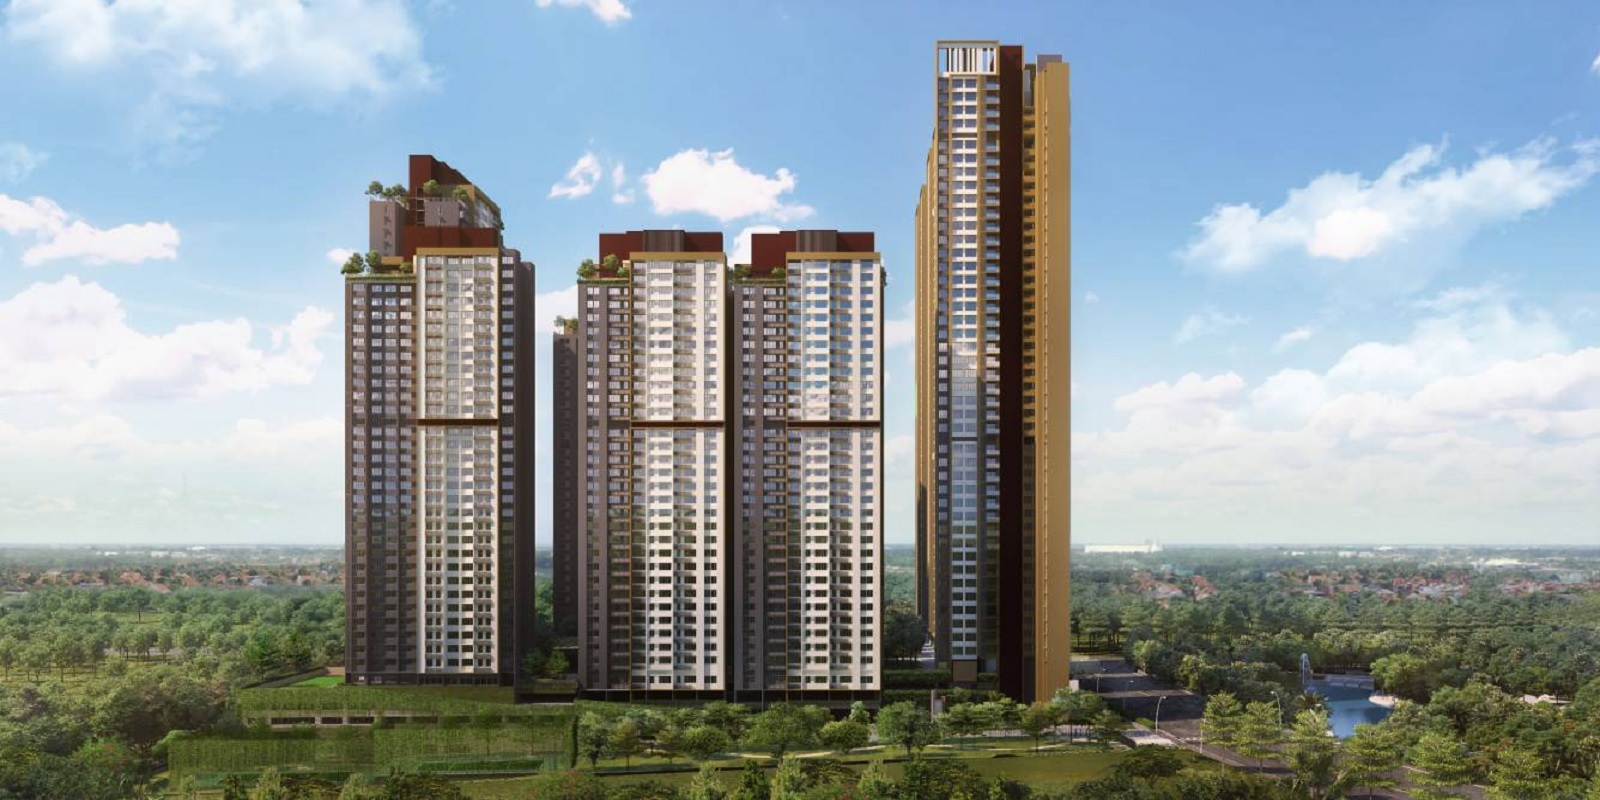 kalpataru launch code starlight sector 5 wing a project large image2